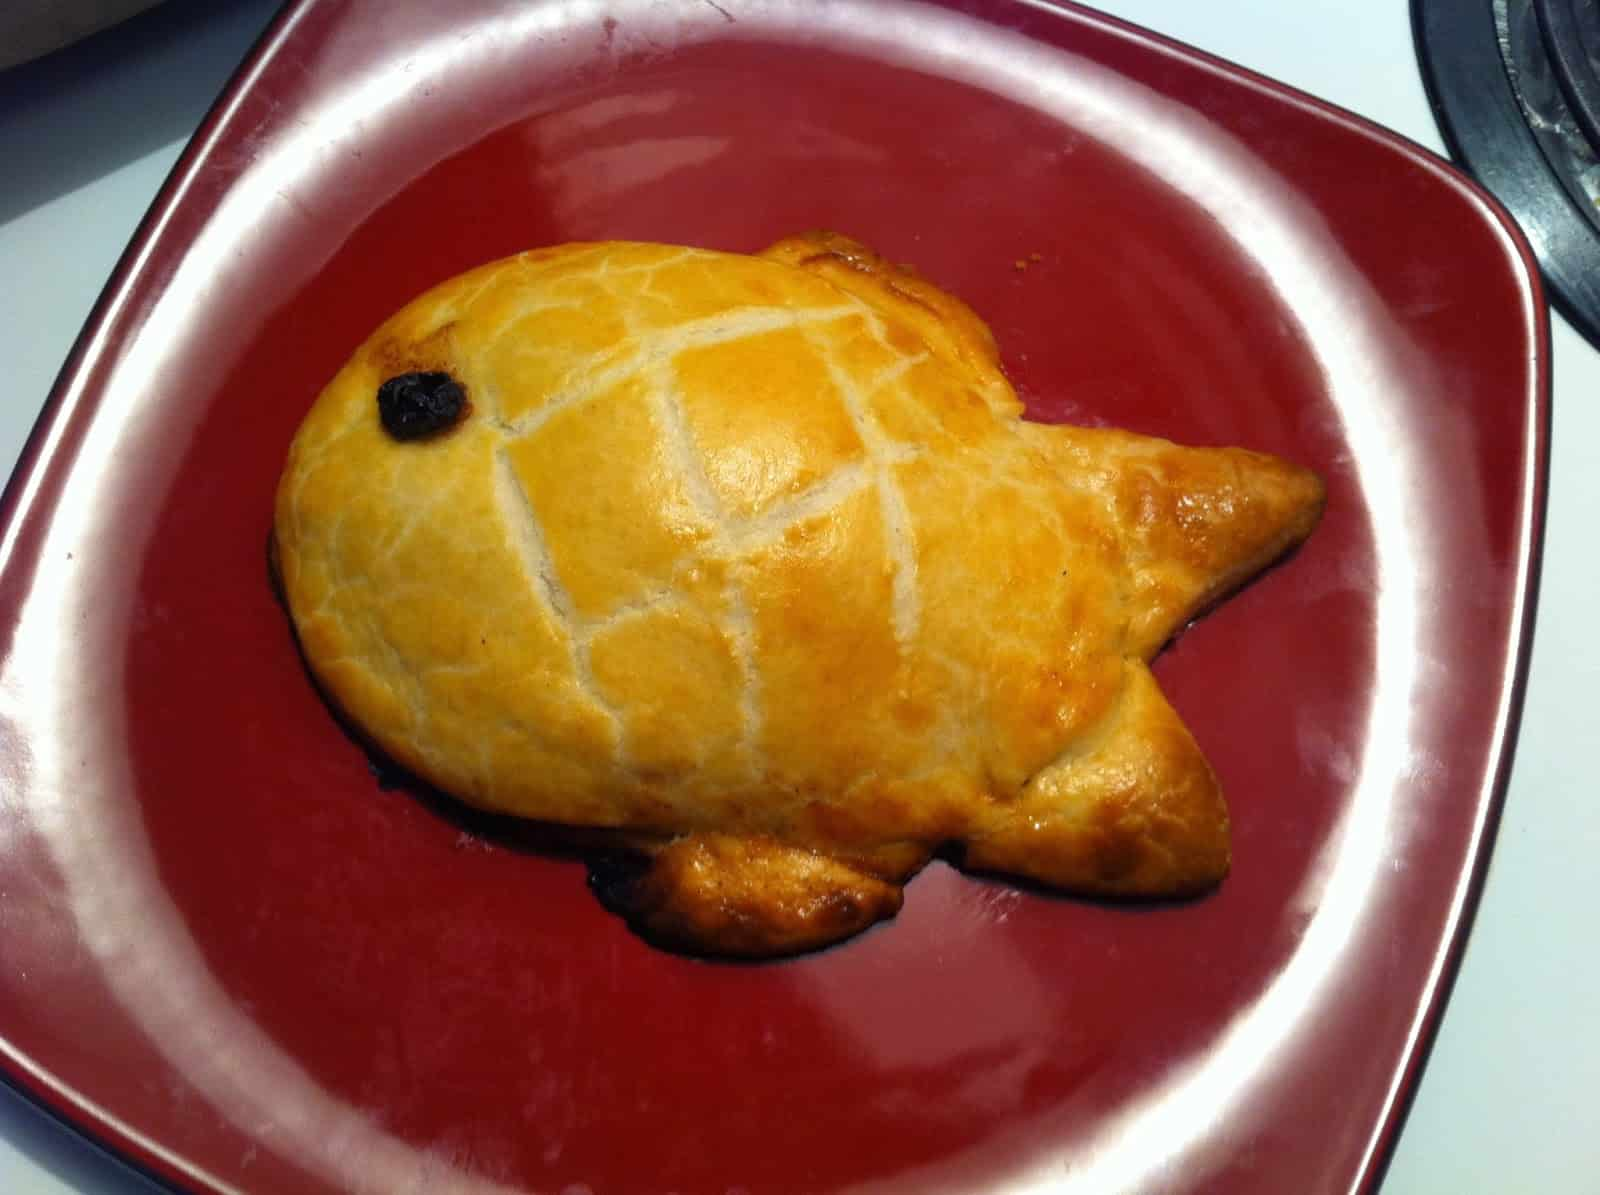 Pastry Fish Recipe From Final Fantasy XIV Nerd Much